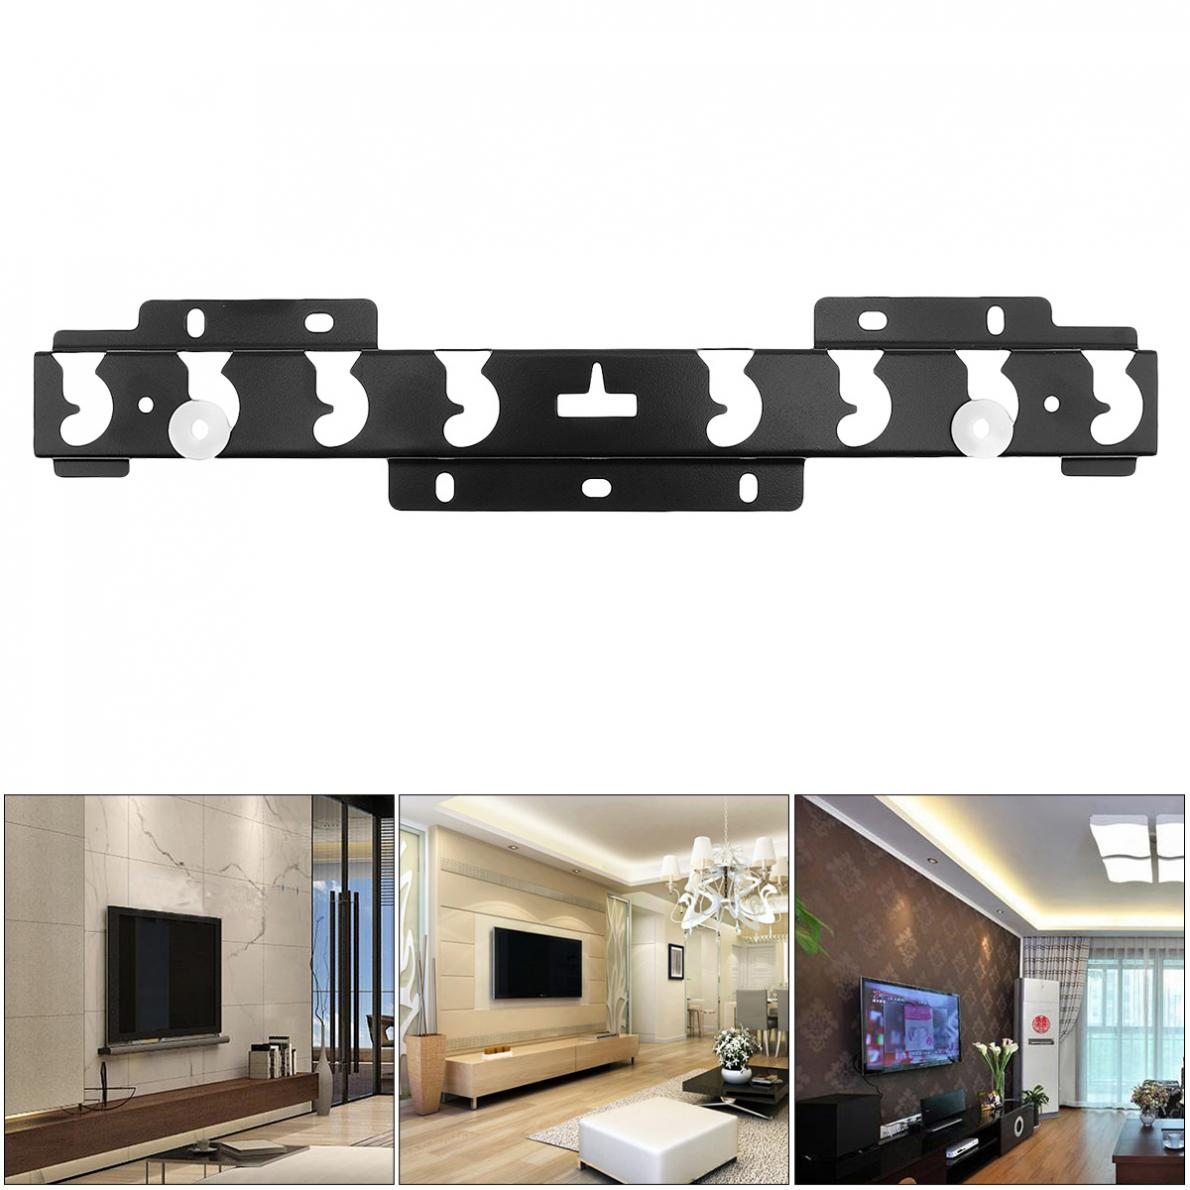 High Quality Black Universal TV Wall Mount Bracket Fixed Flat Panel TV Frame for 32-60 Inch LCD LED Monitor Flat Panel